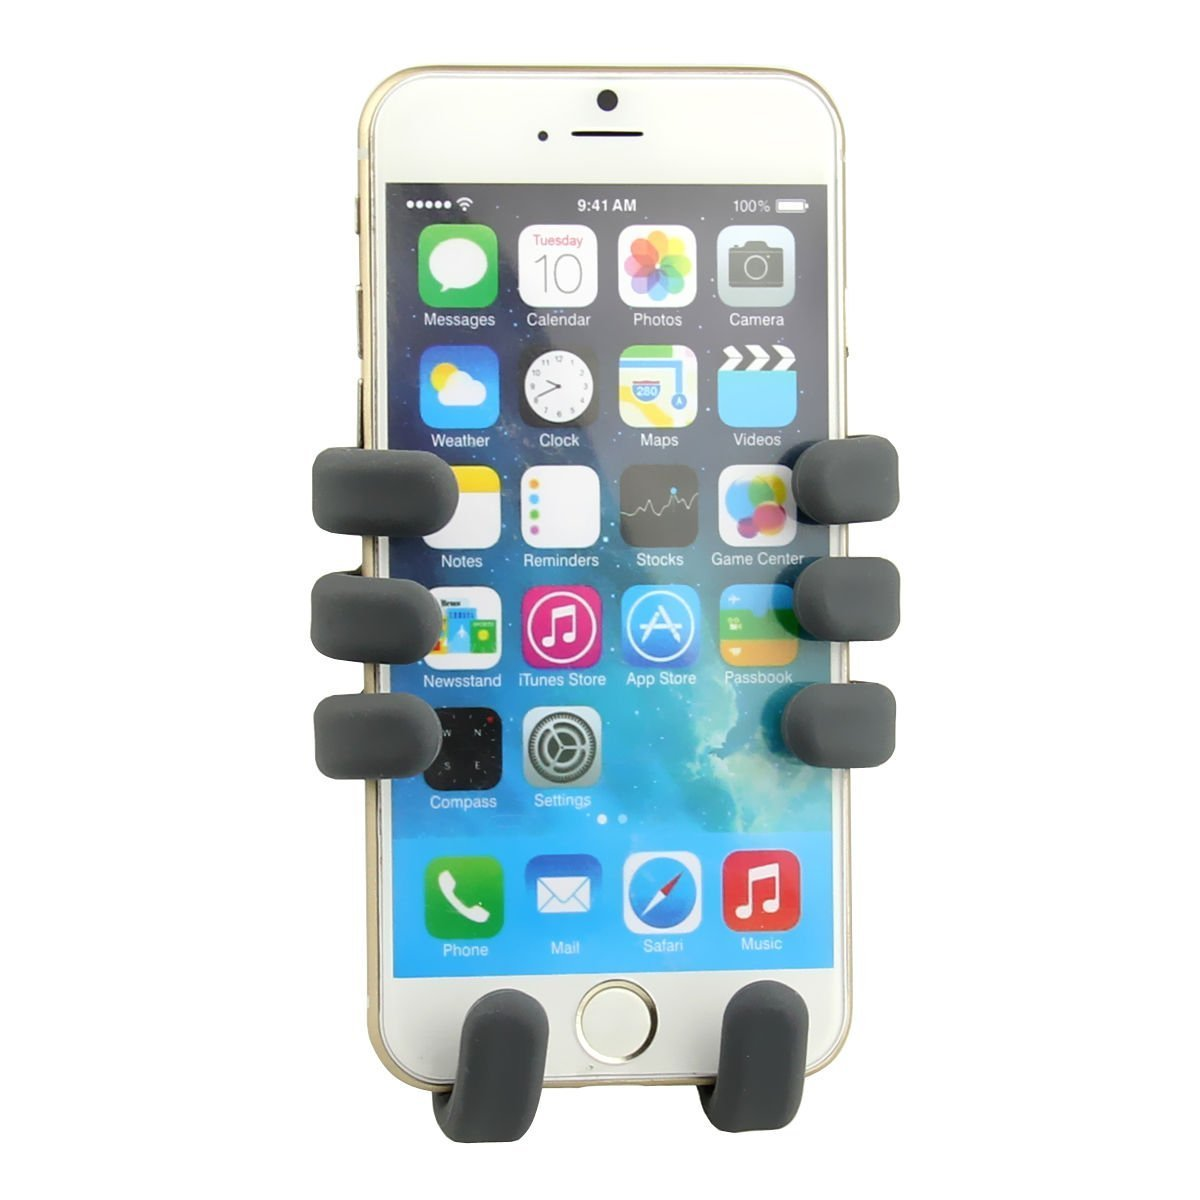 Coolpers Six Armed Monkey Phone Stand And Air Vent Car Cd Writer 8211 How The Burner Works Portable Adjustable Holder From 35 To 52 For Iphone 6 Samsung Galaxy S6 Black Cell